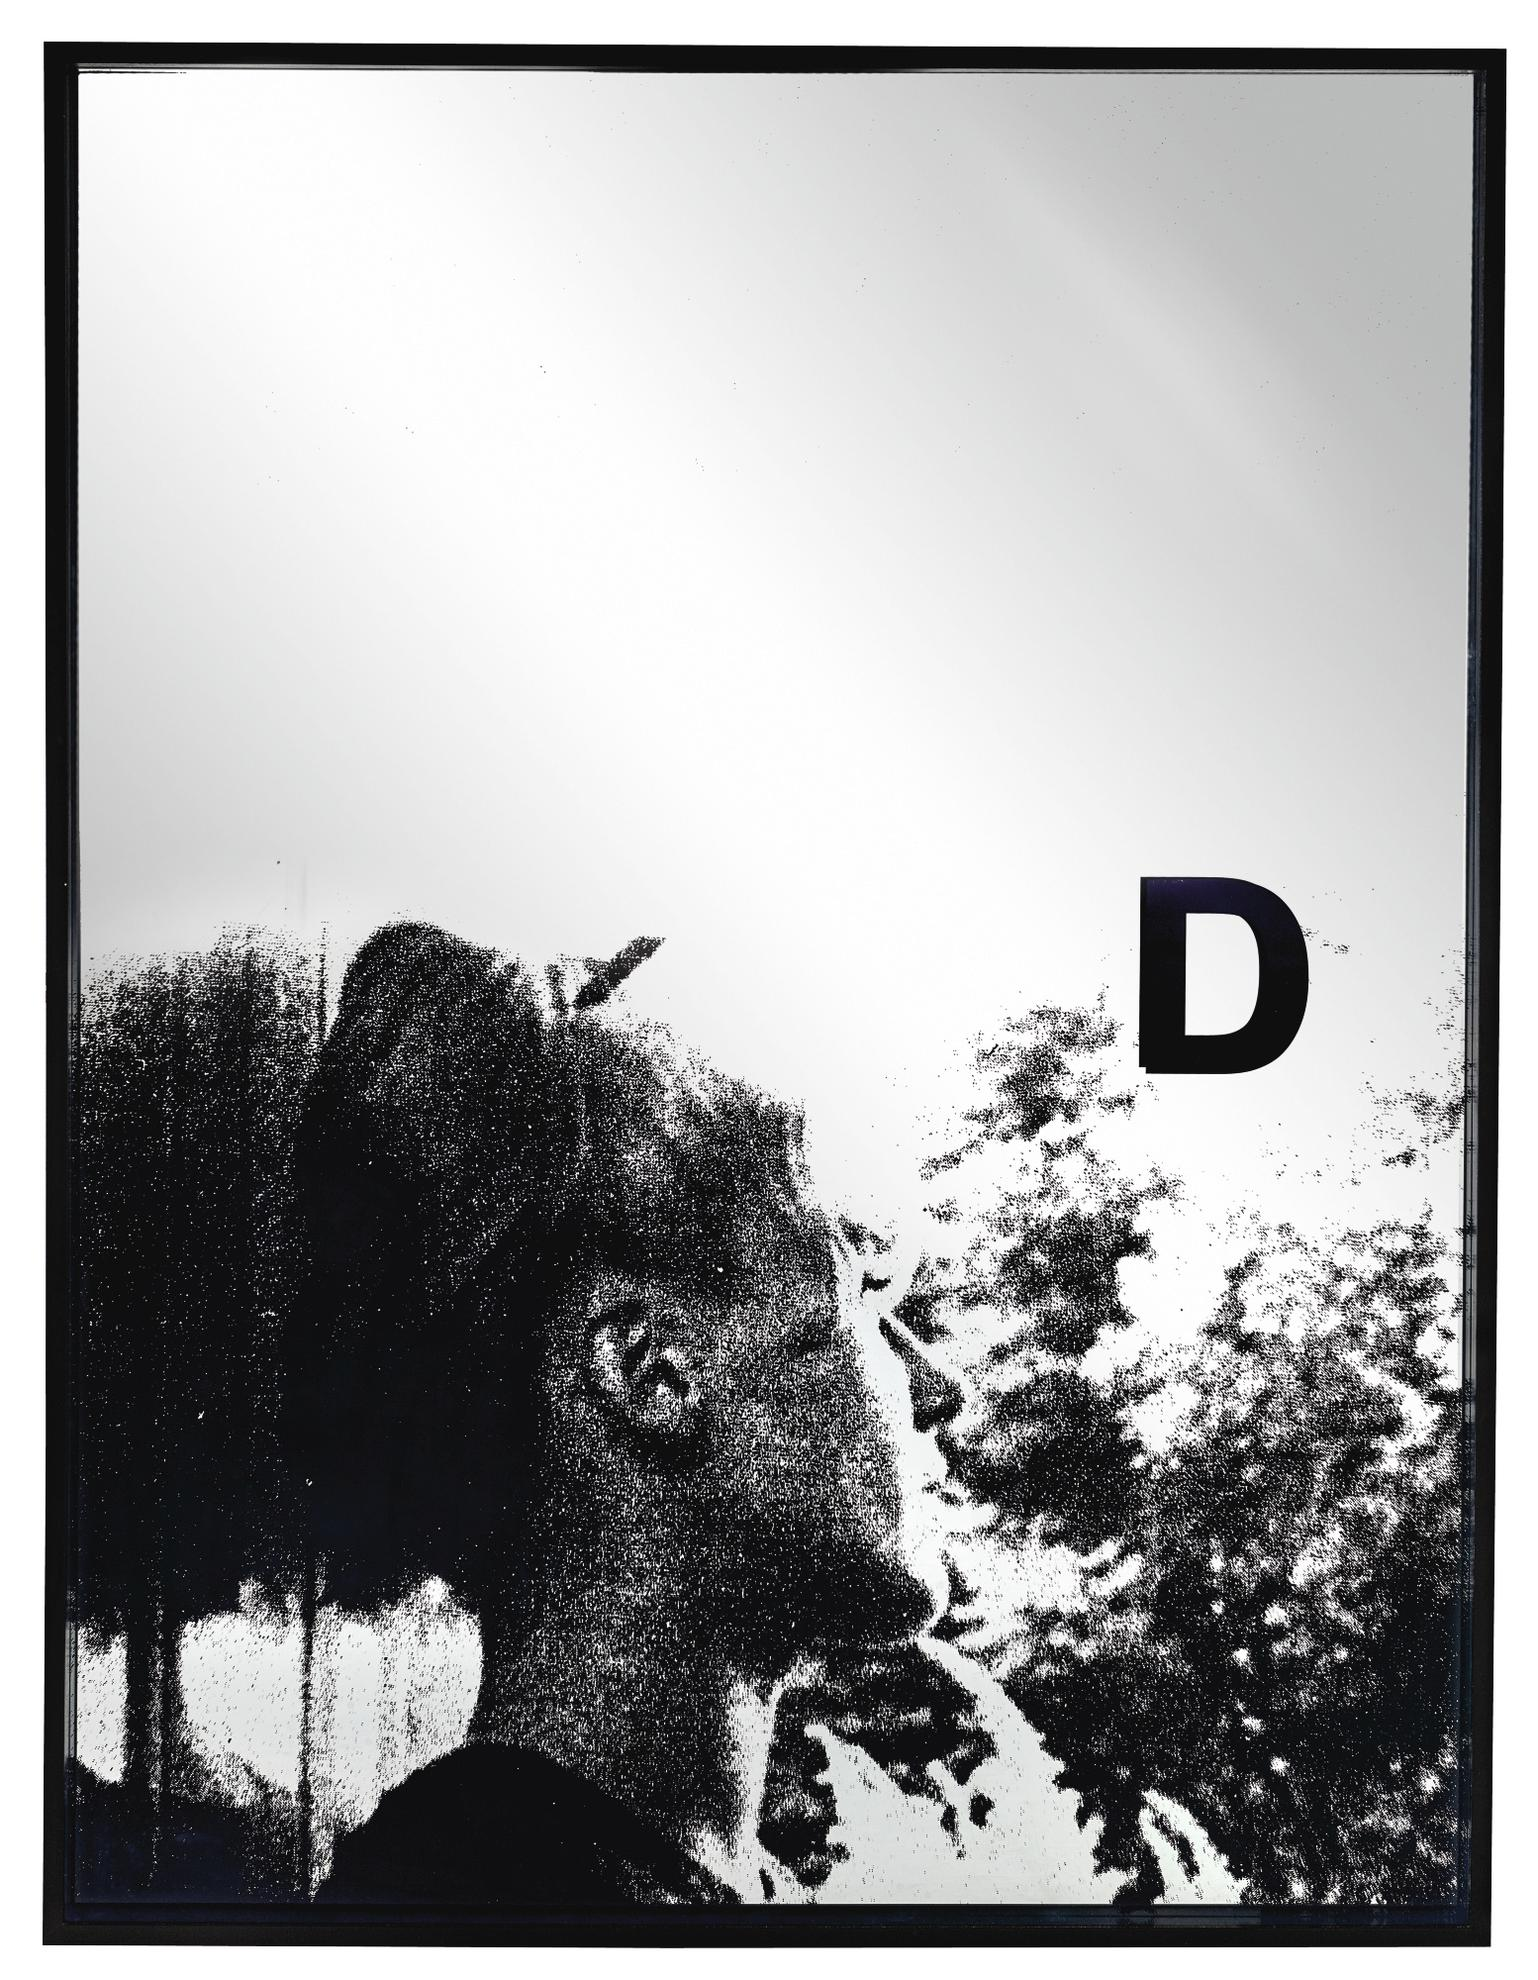 Adam Pendleton-System Of Display, D (Divided/ Jean-Marie Straub, The Bridegroom, The Comedienne & The Pimp, 1968)-2011